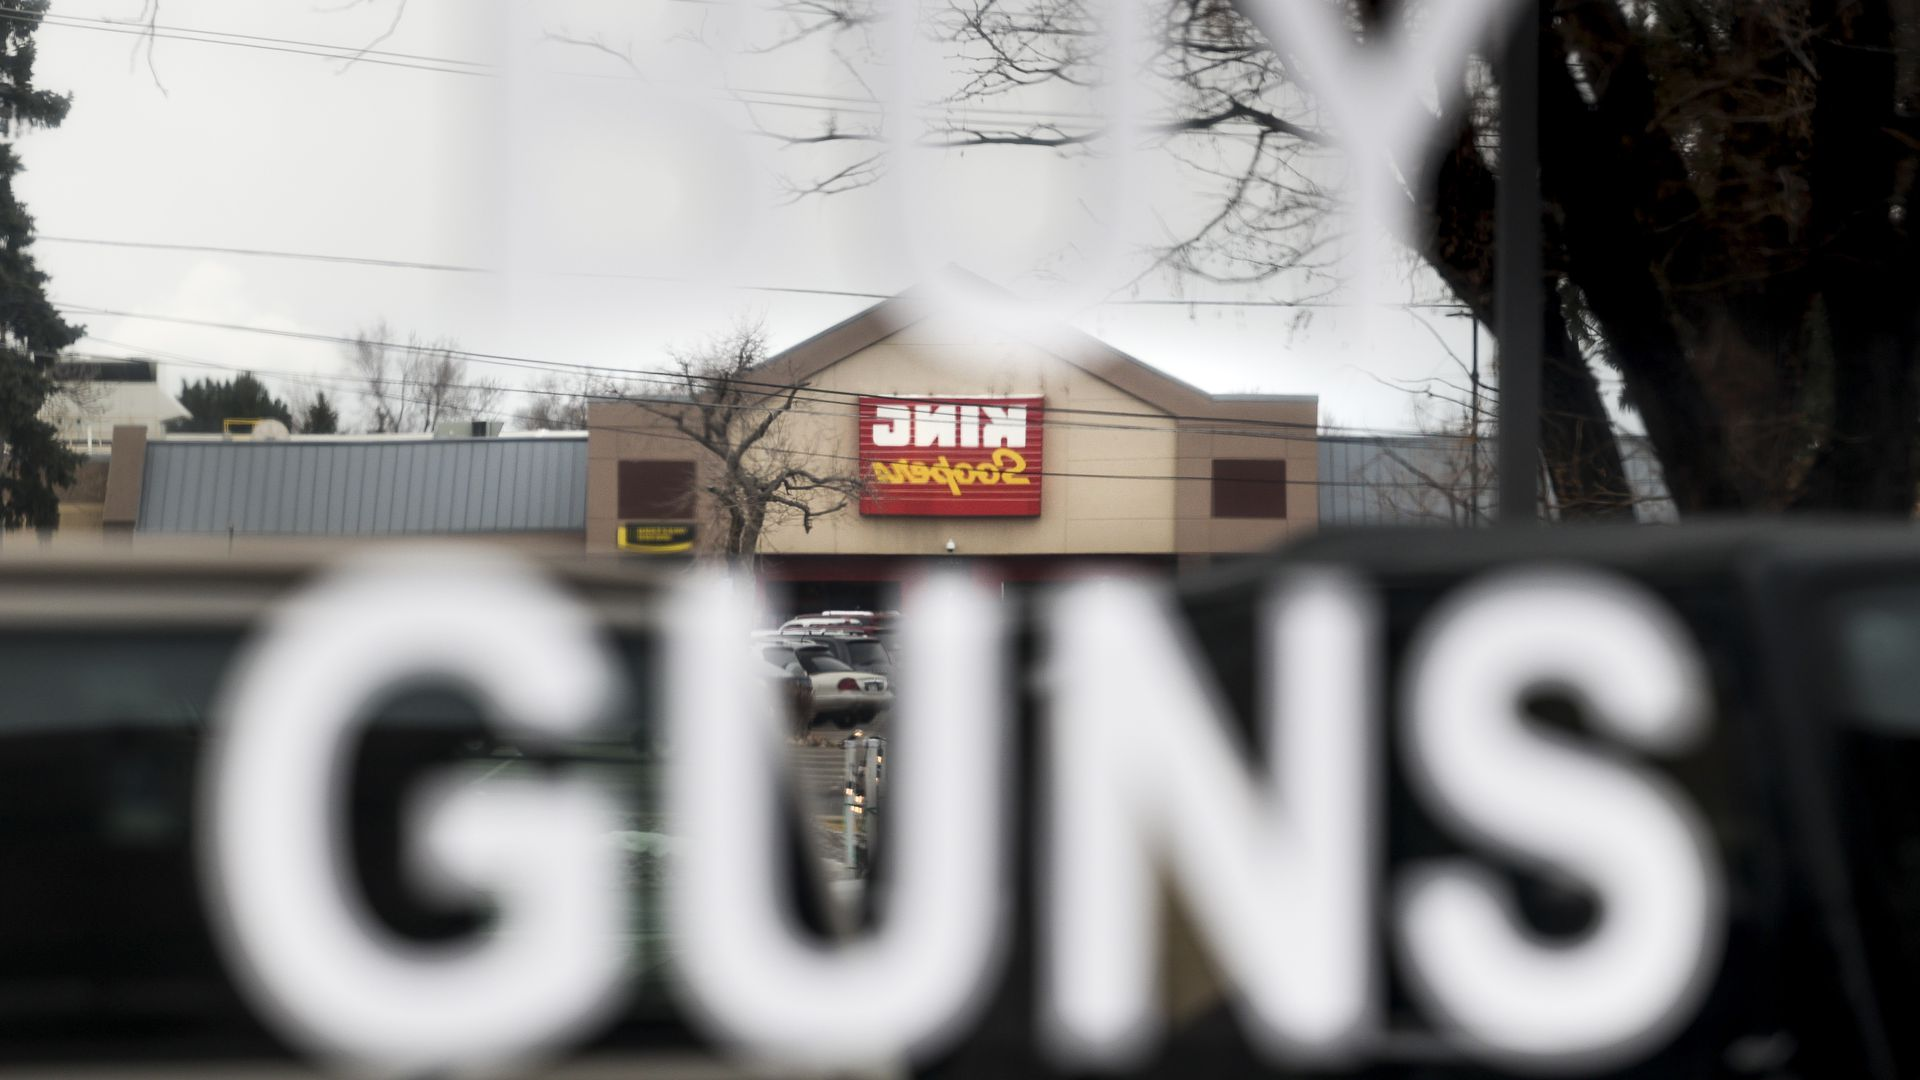 A King Soopers grocery store, not connected to the Boulder shooting, is reflected in the window of the Eagles Nest Armory in Arvada.